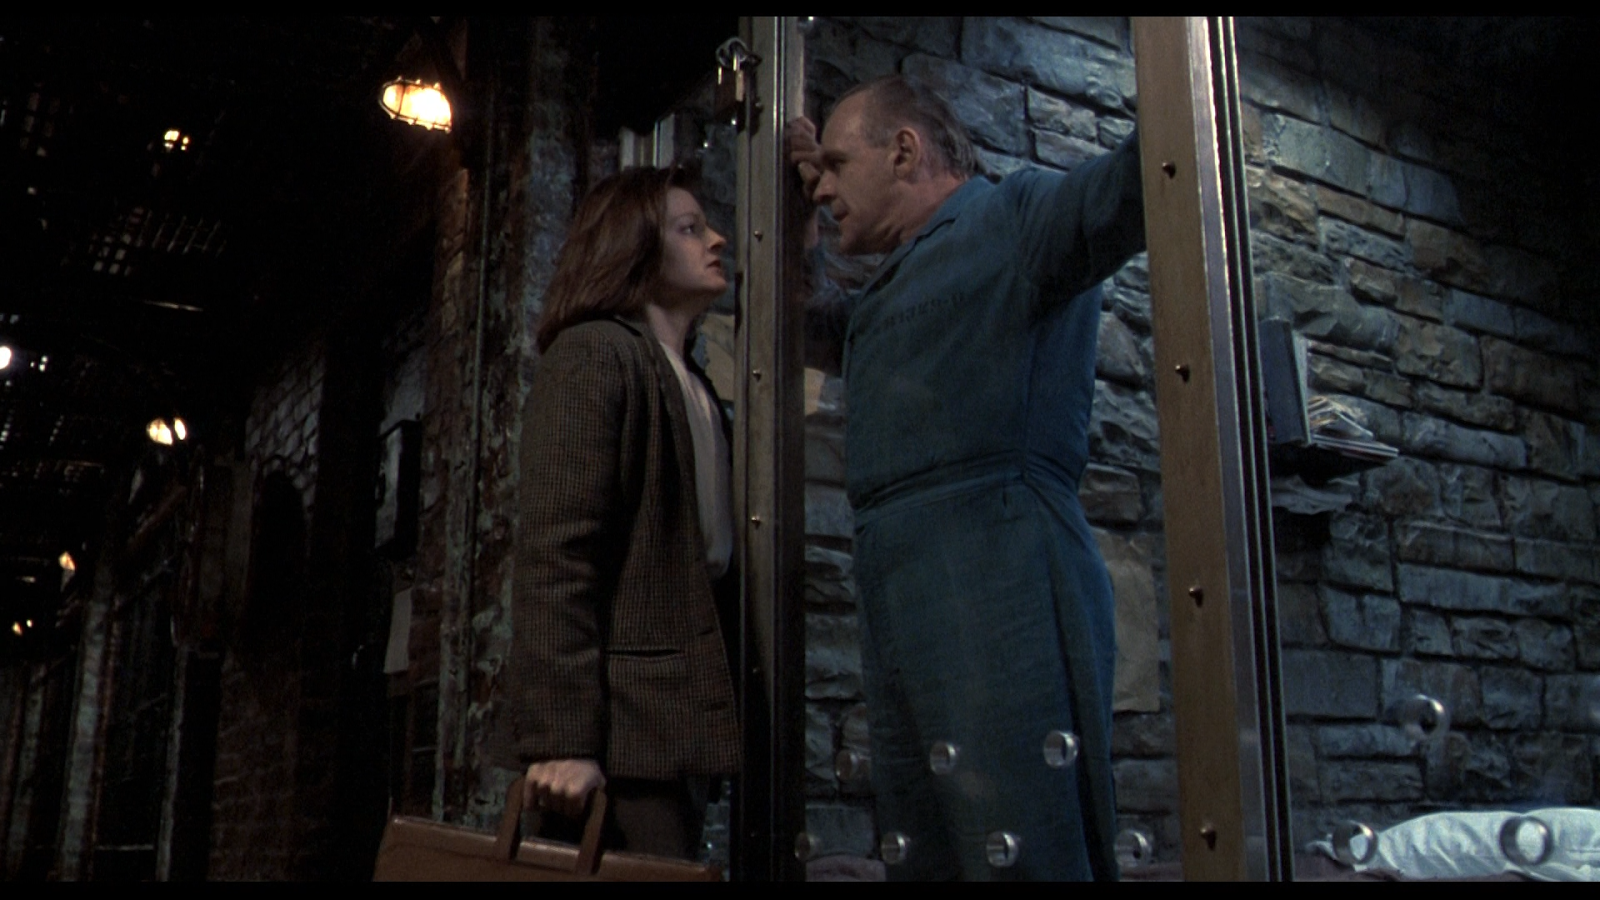 Really talented actors. Silence of the Lambs is a masterpiece created by them